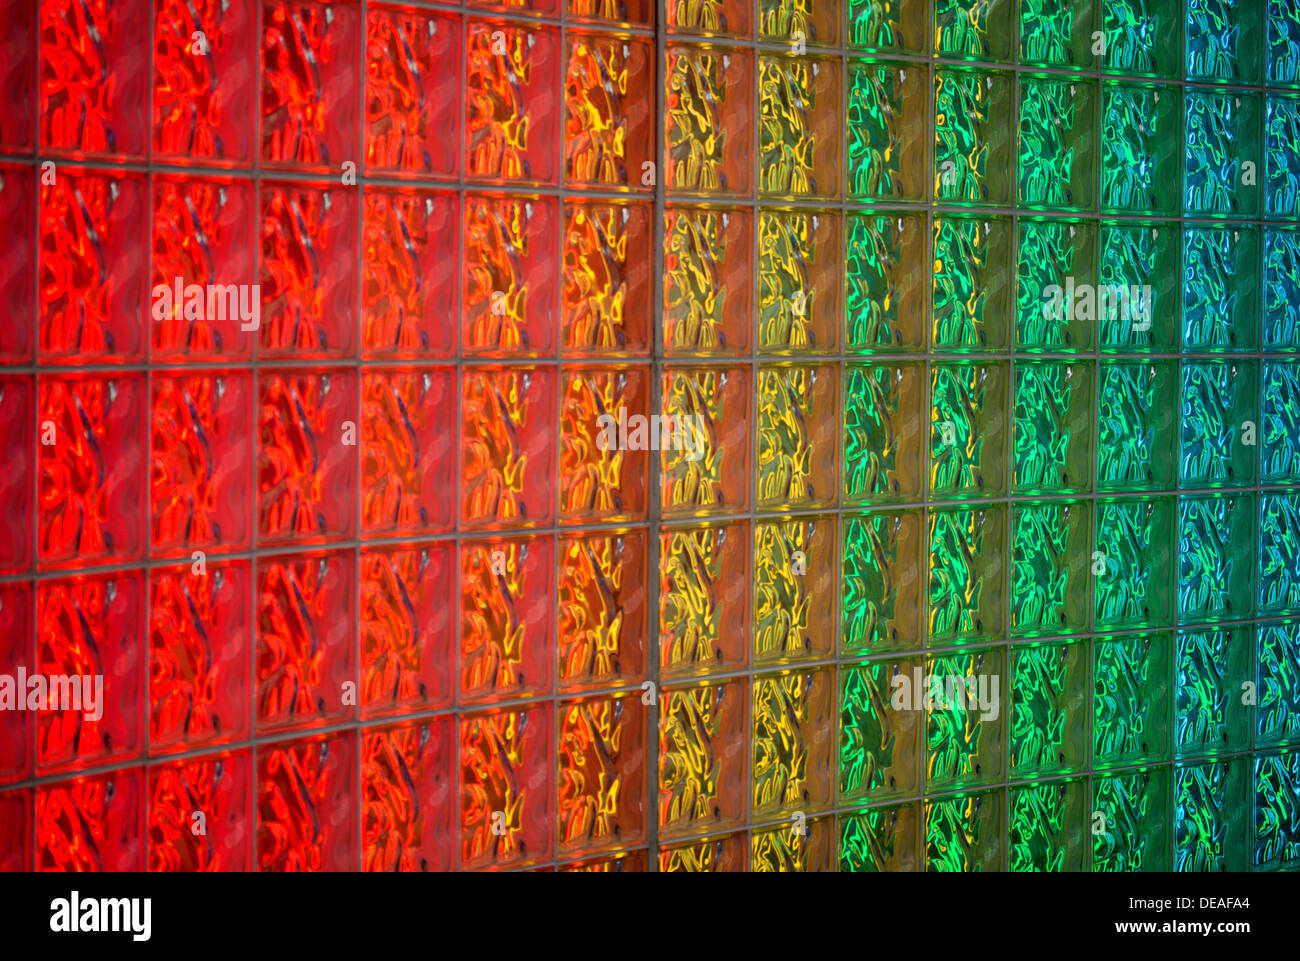 Detail of glass block wall back-lit with neon lights in rainbow colors. Image shows detail of blocks and colors. - Stock Image